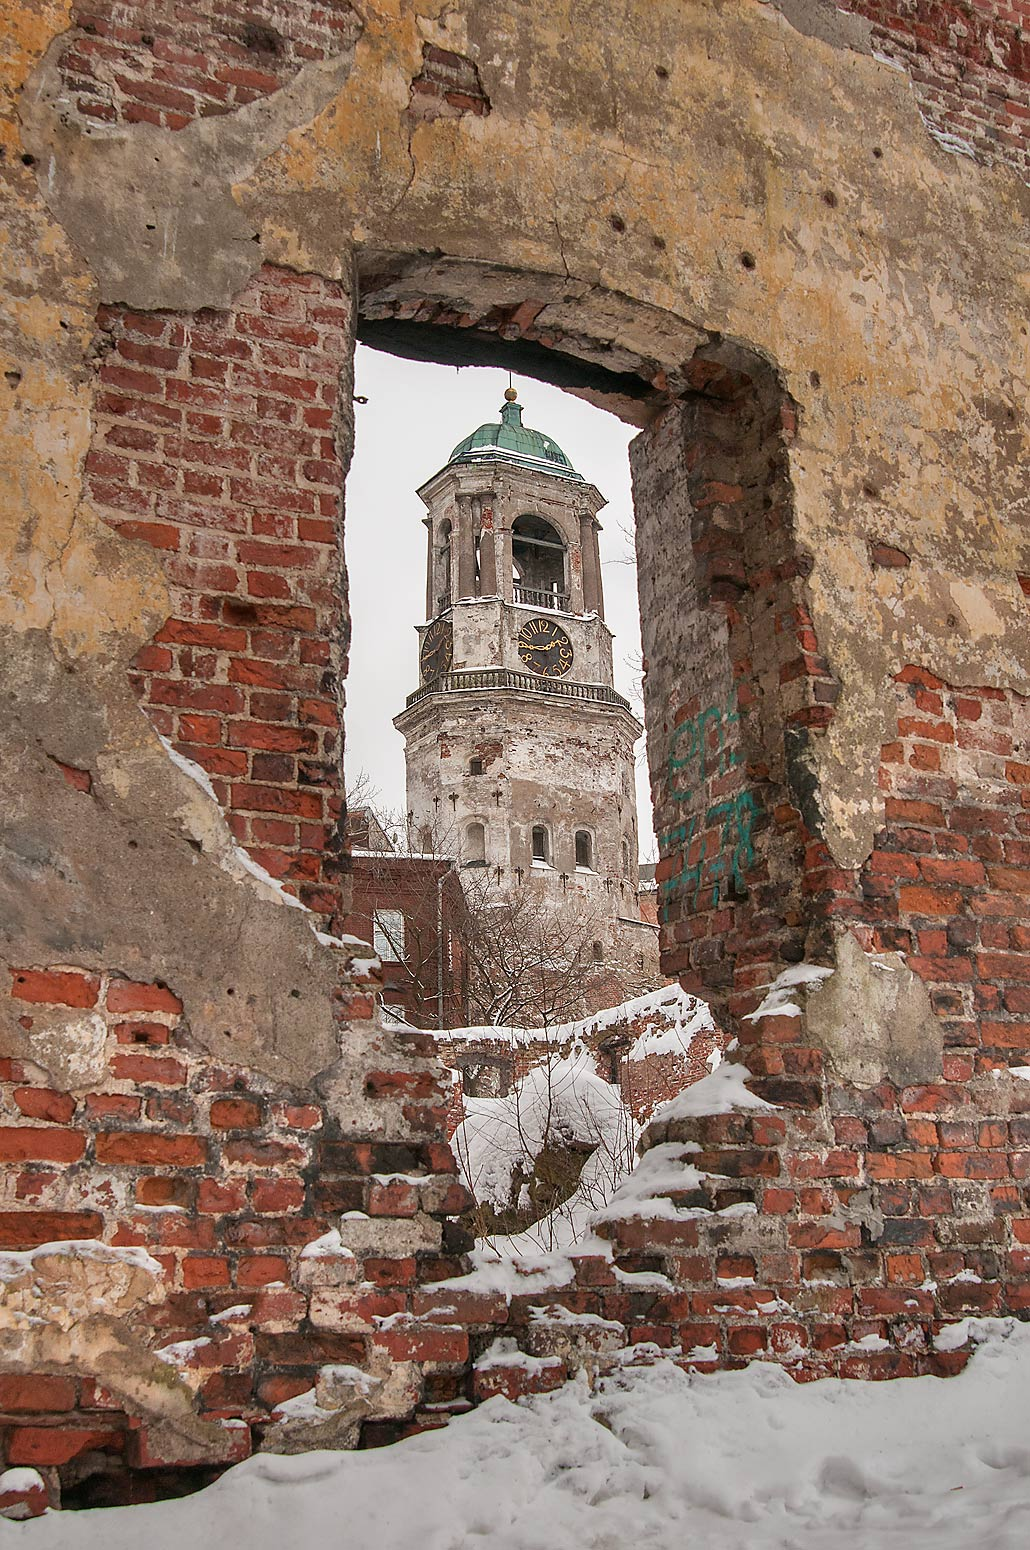 Clock Tower through walls of Mary and Olaf Cathedral. Vyborg, Russia